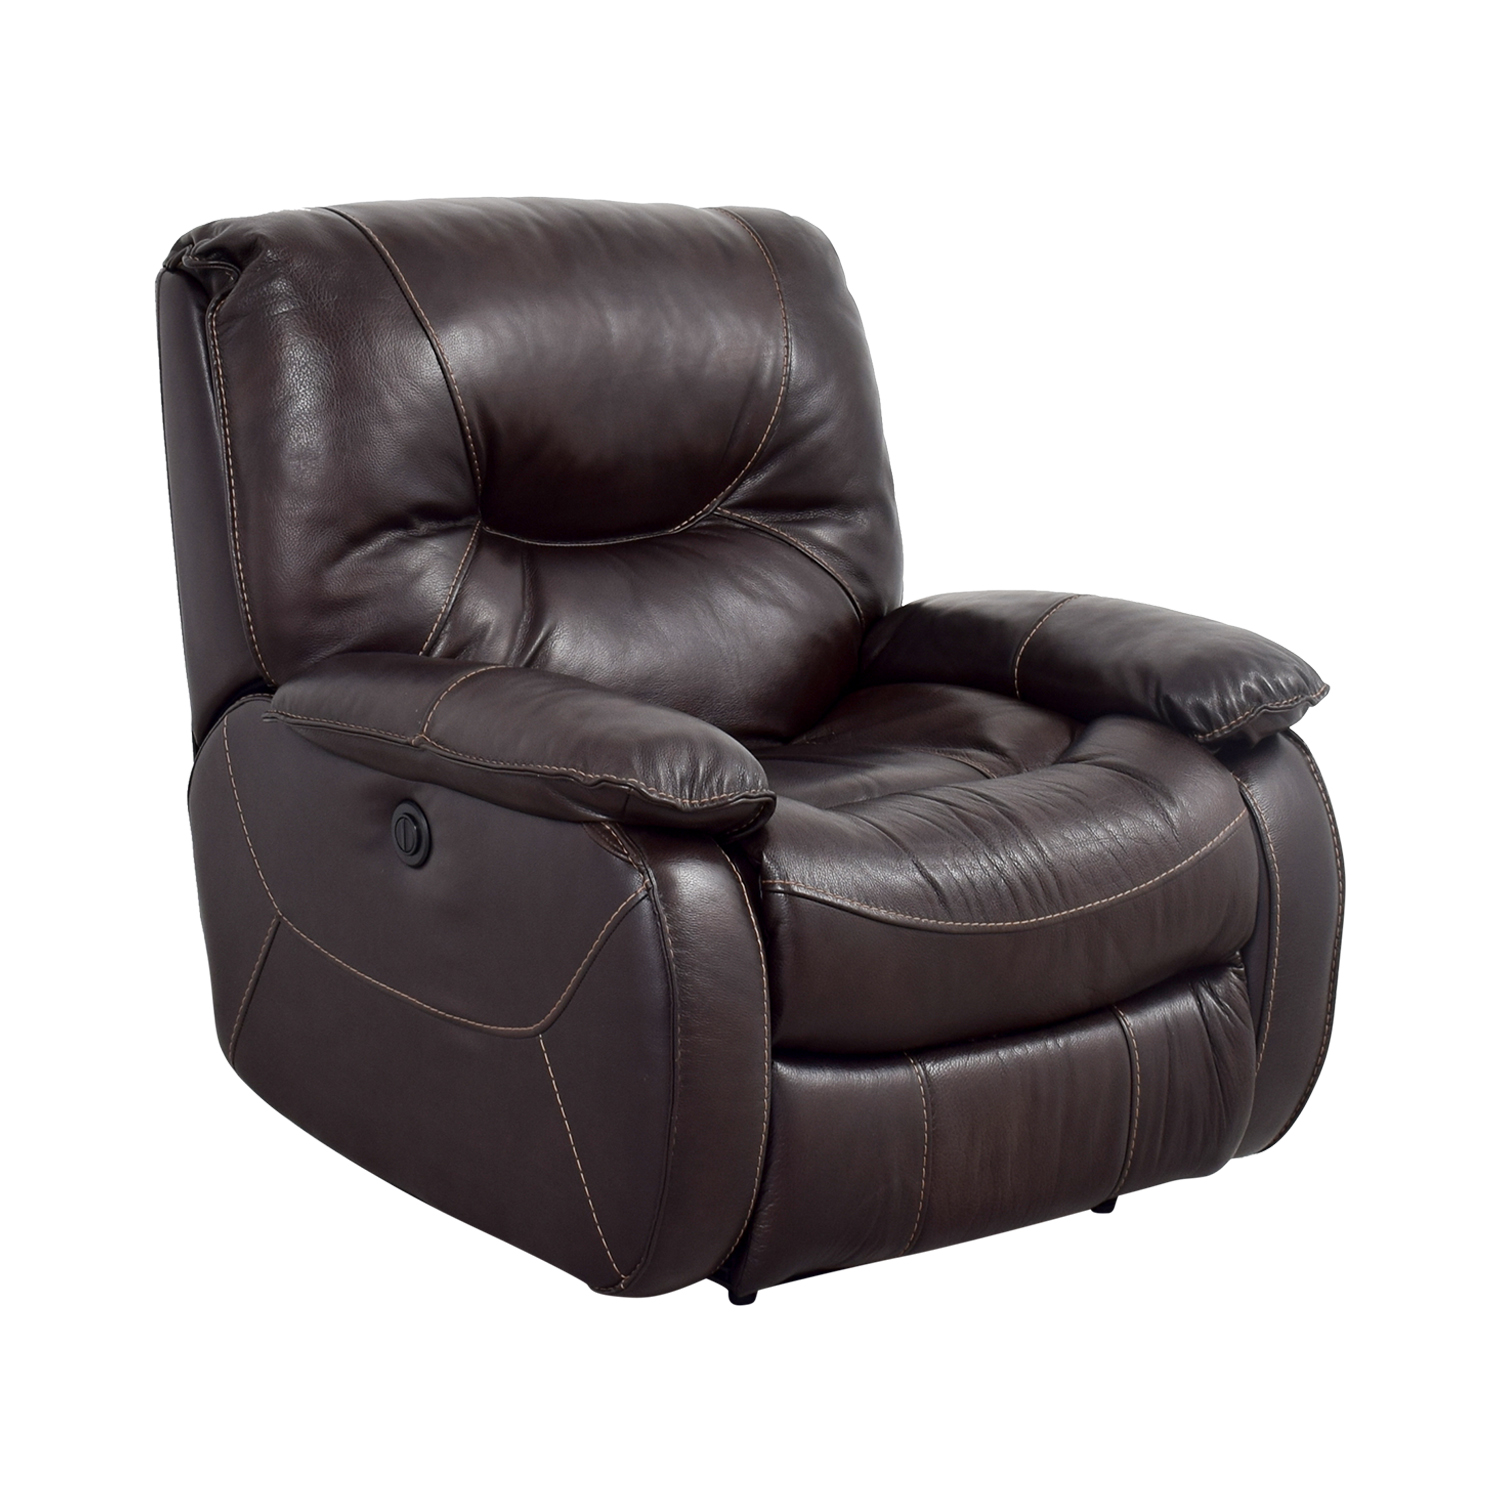 86 Off Dark Brown Leather Motorized Recliner Chairs